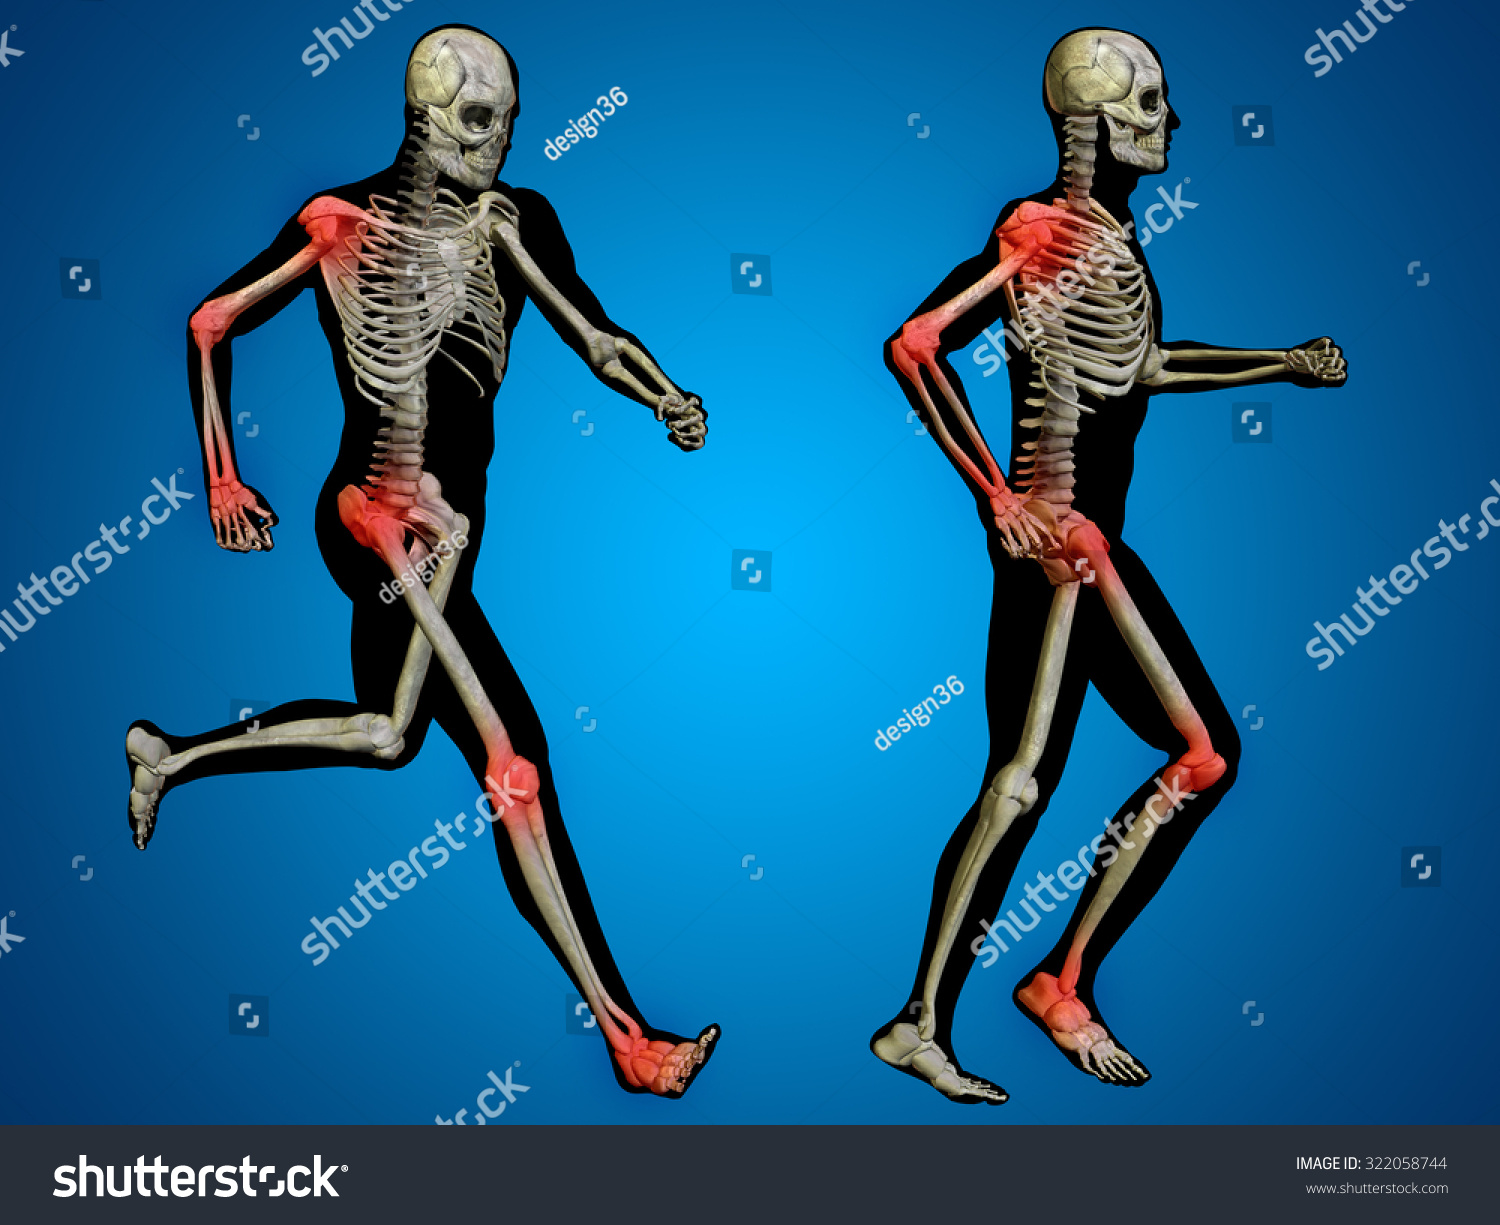 Concept Or Conceptual 3d Human Man Or Male Skeleton Pain Or Ache